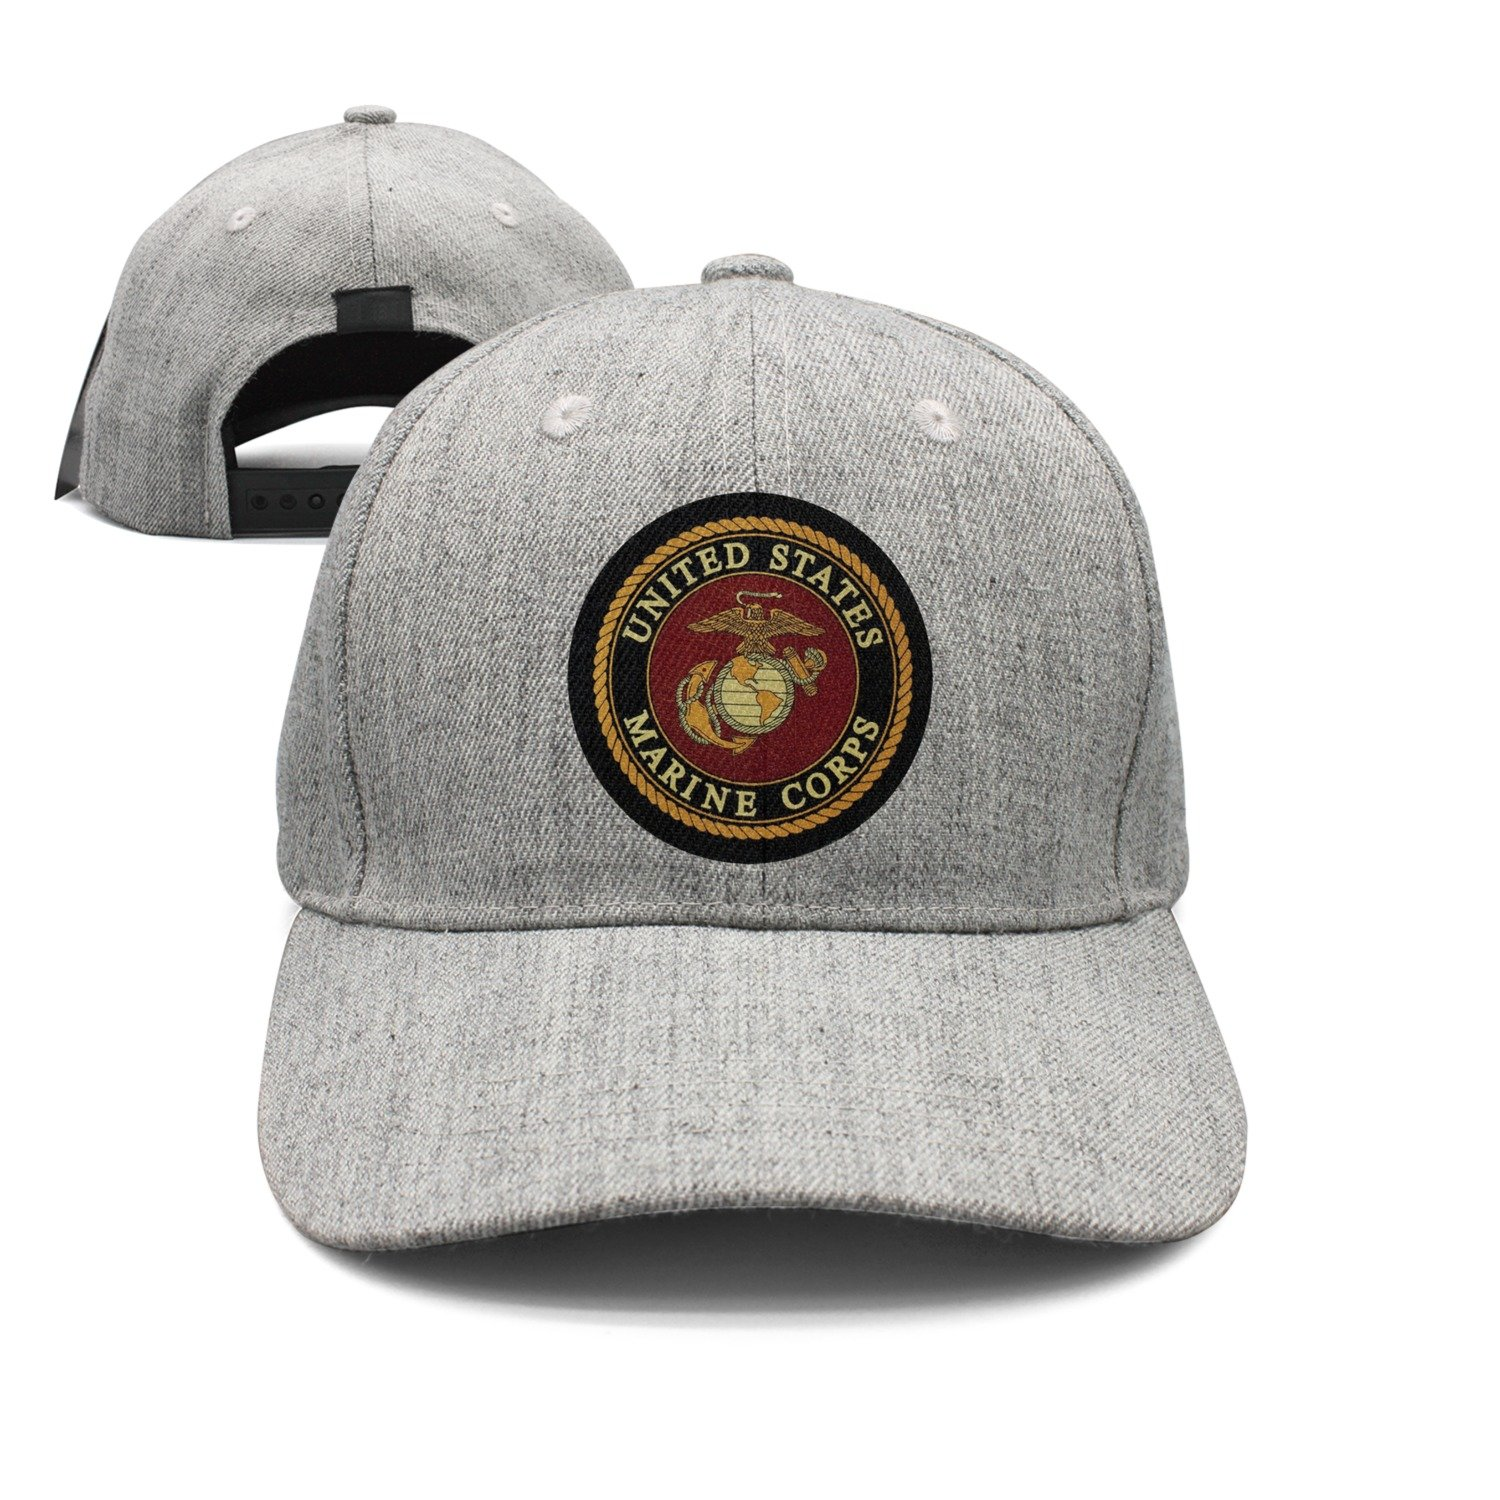 cc2bc51dd91 Amazon.com  Flat-Brim Baseball Caps USMC-Eagle Globe and Anchor Snapback  Unisex Adjustable Hat  Clothing